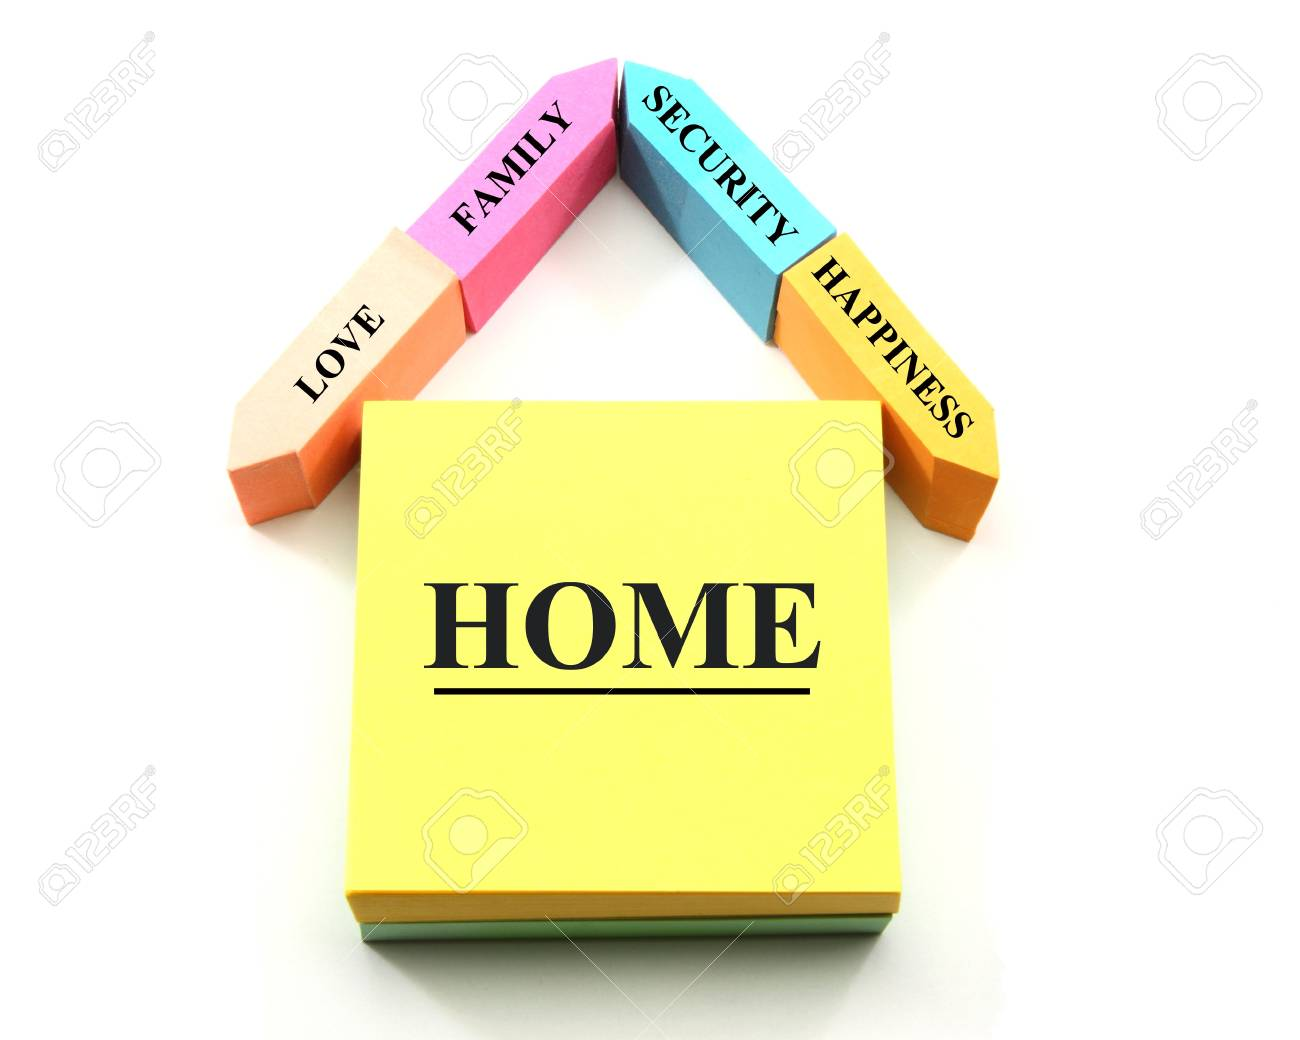 A colorful home or house concept made out of different shaped sticky notes with home, happiness, family, love, and security labels. Stock Photo - 8713005